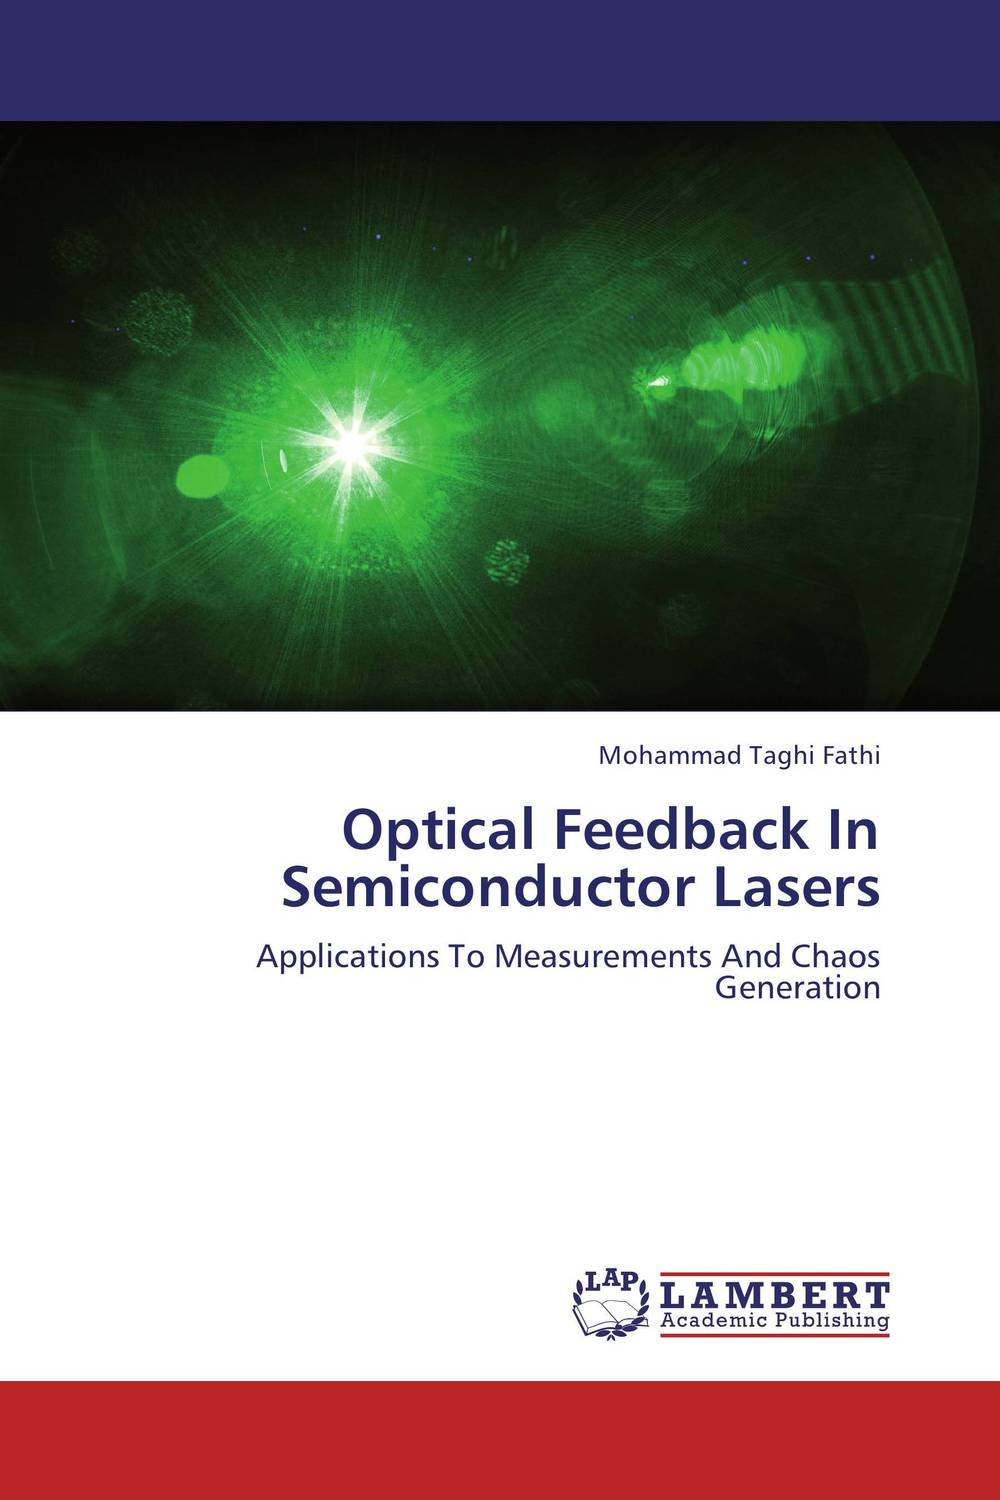 Optical Feedback In Semiconductor Lasers